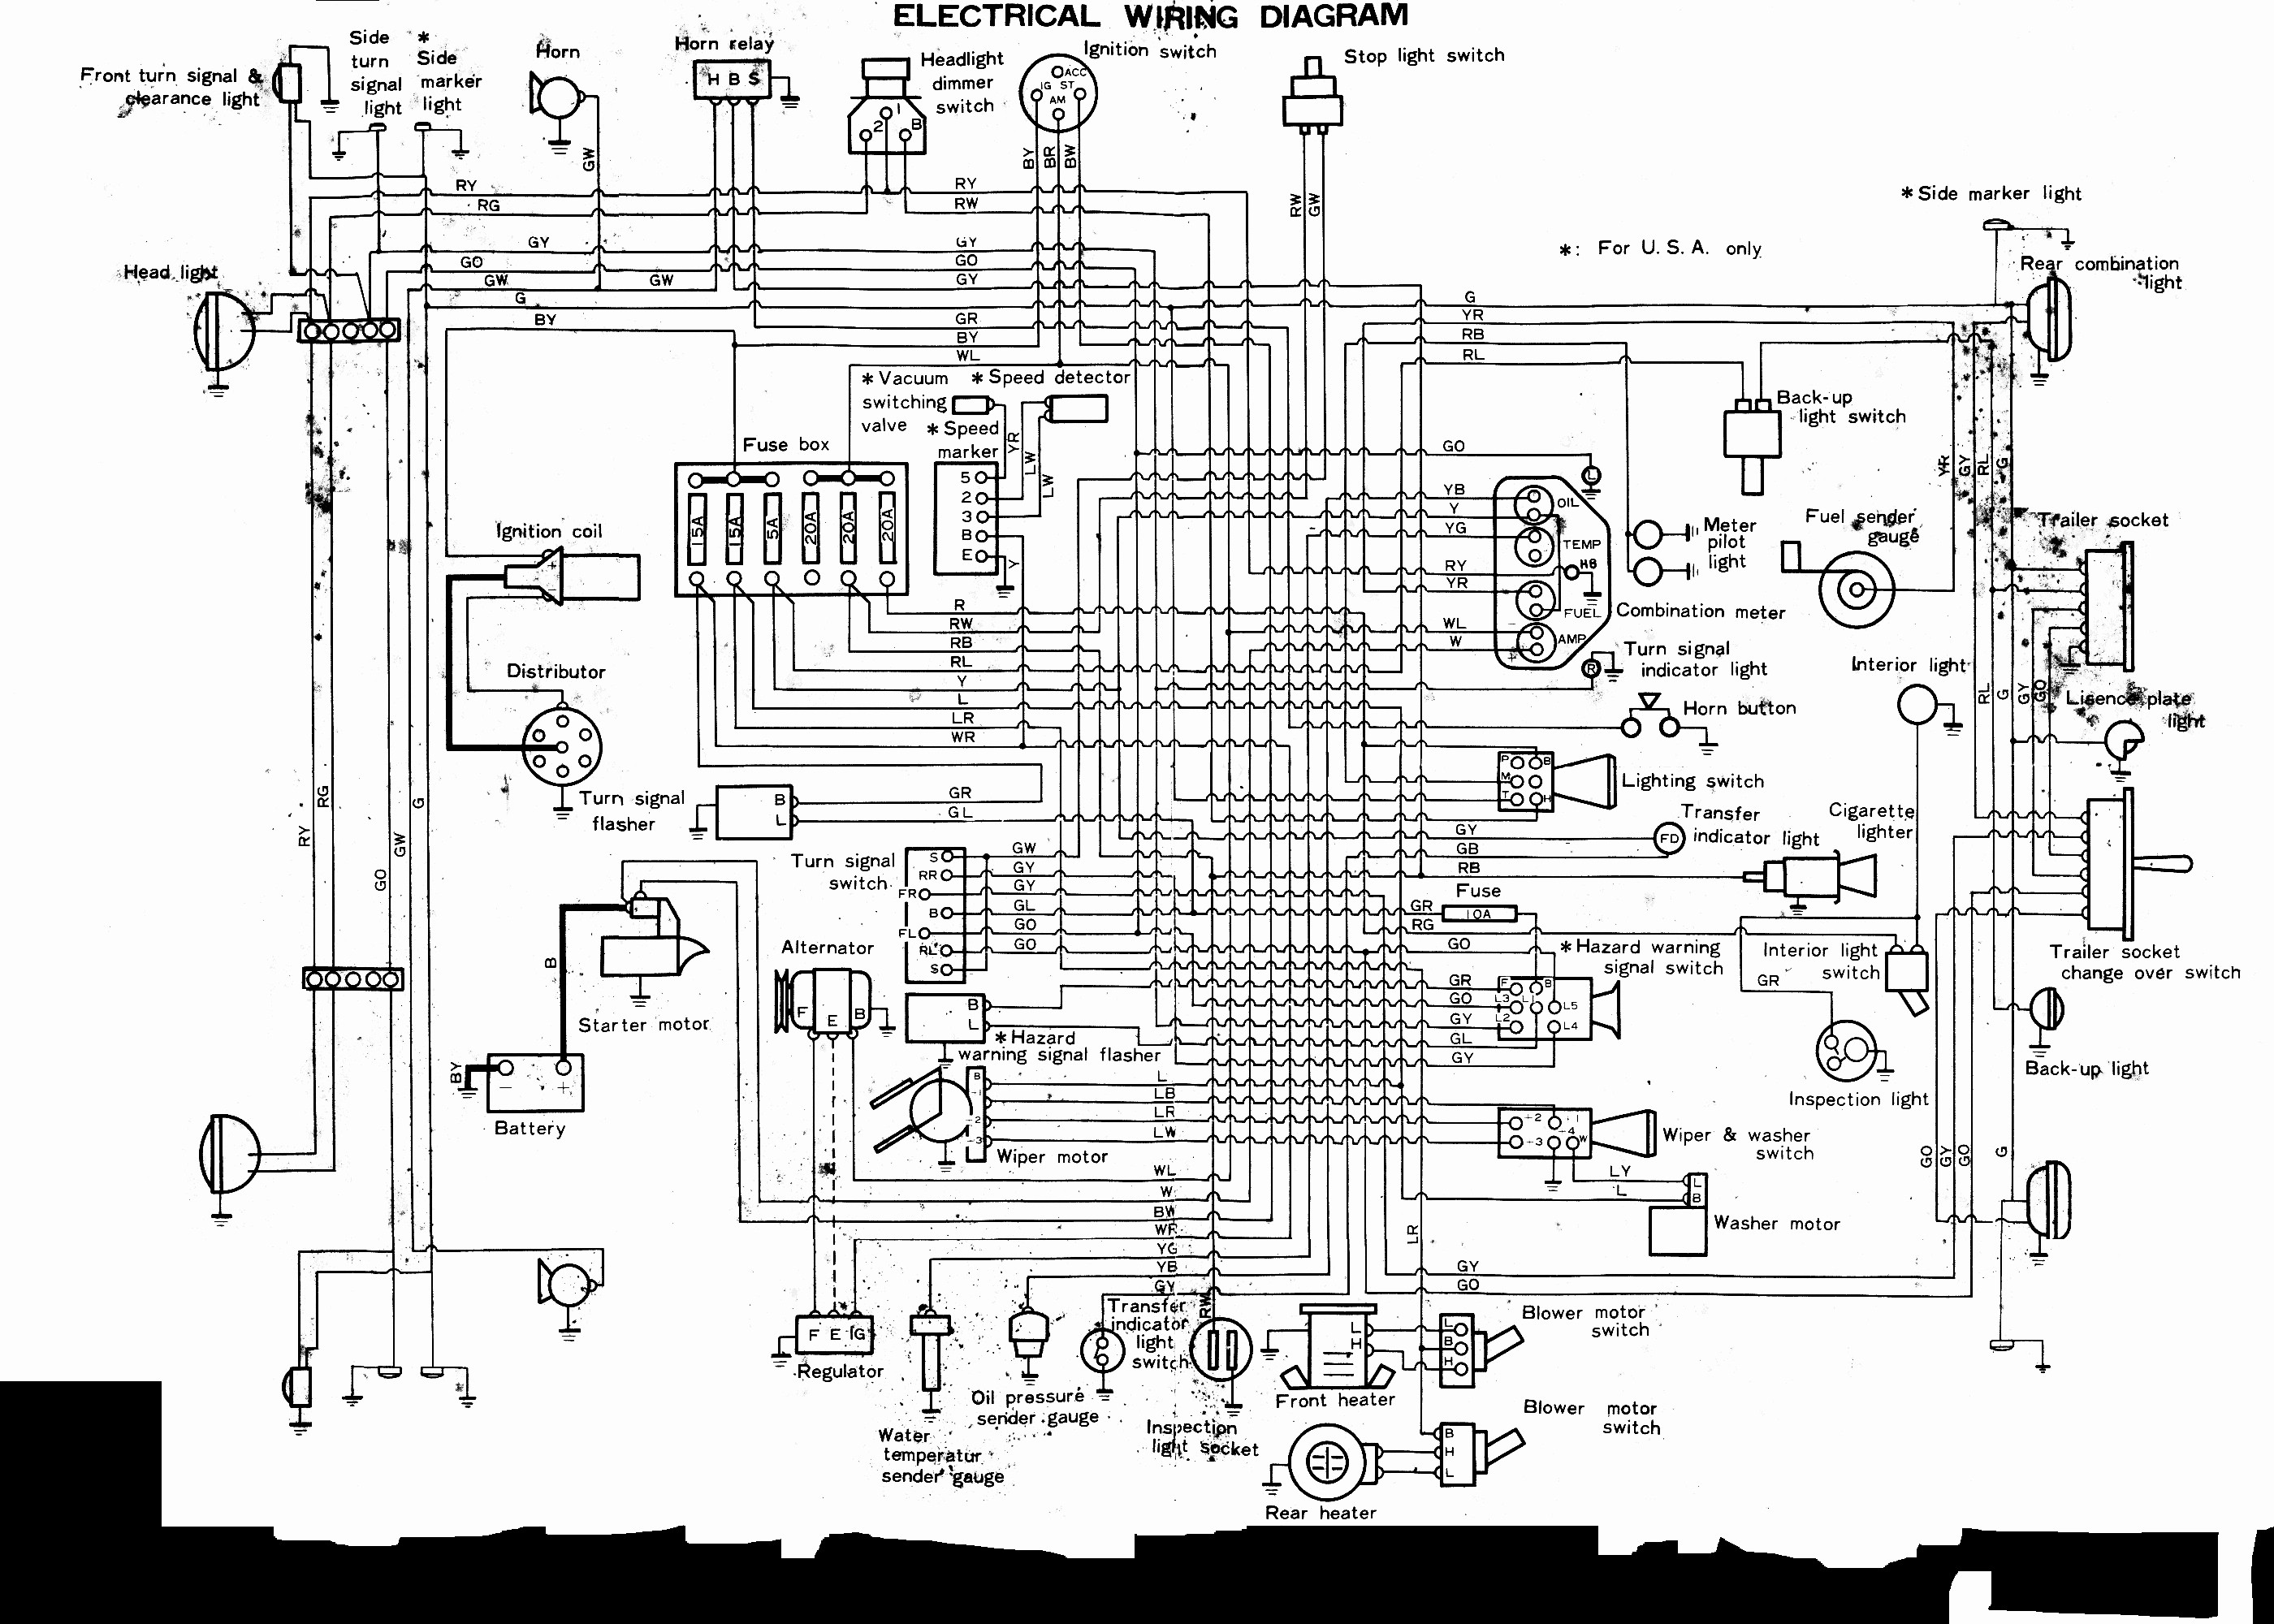 2003 Impala Dimmer Switch Wiring Diagram  57